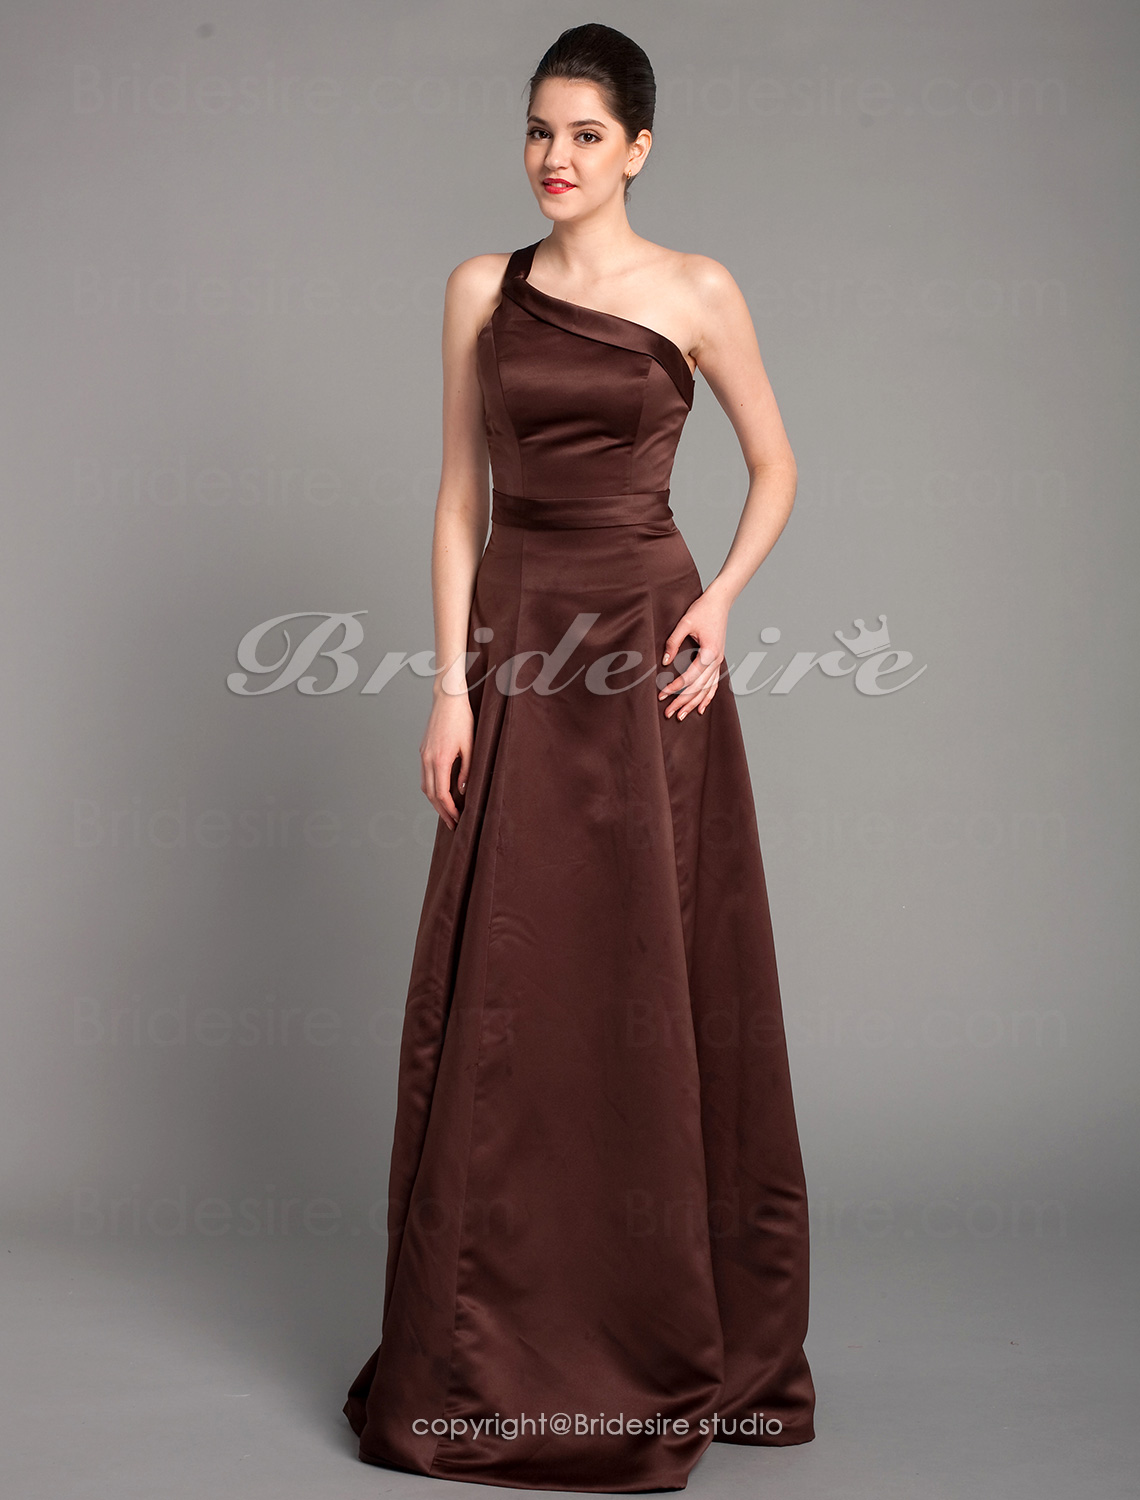 A-line Sleeveless One Shoulder Satin Ankle-length Bridesmaid Dress